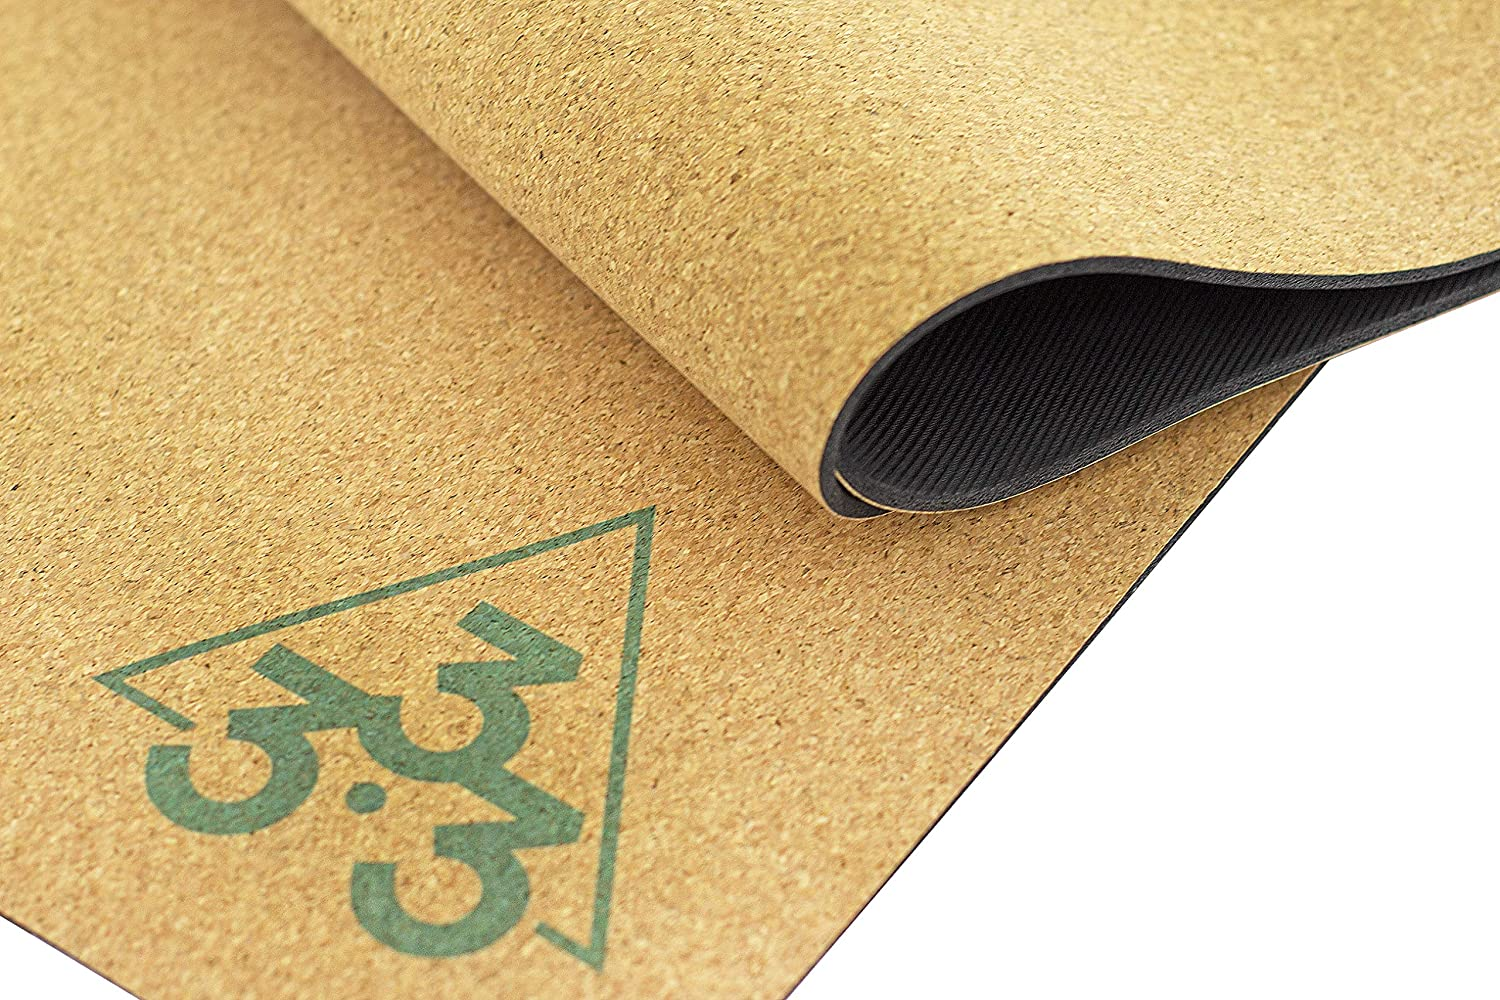 Luxury Cork Yoga Mat - Large Thick & Wide Natural Rubber Mats - Organic Eco Friendly Material - Non Slip Sweat Absorbent Extra Long Exercise Foldable ...